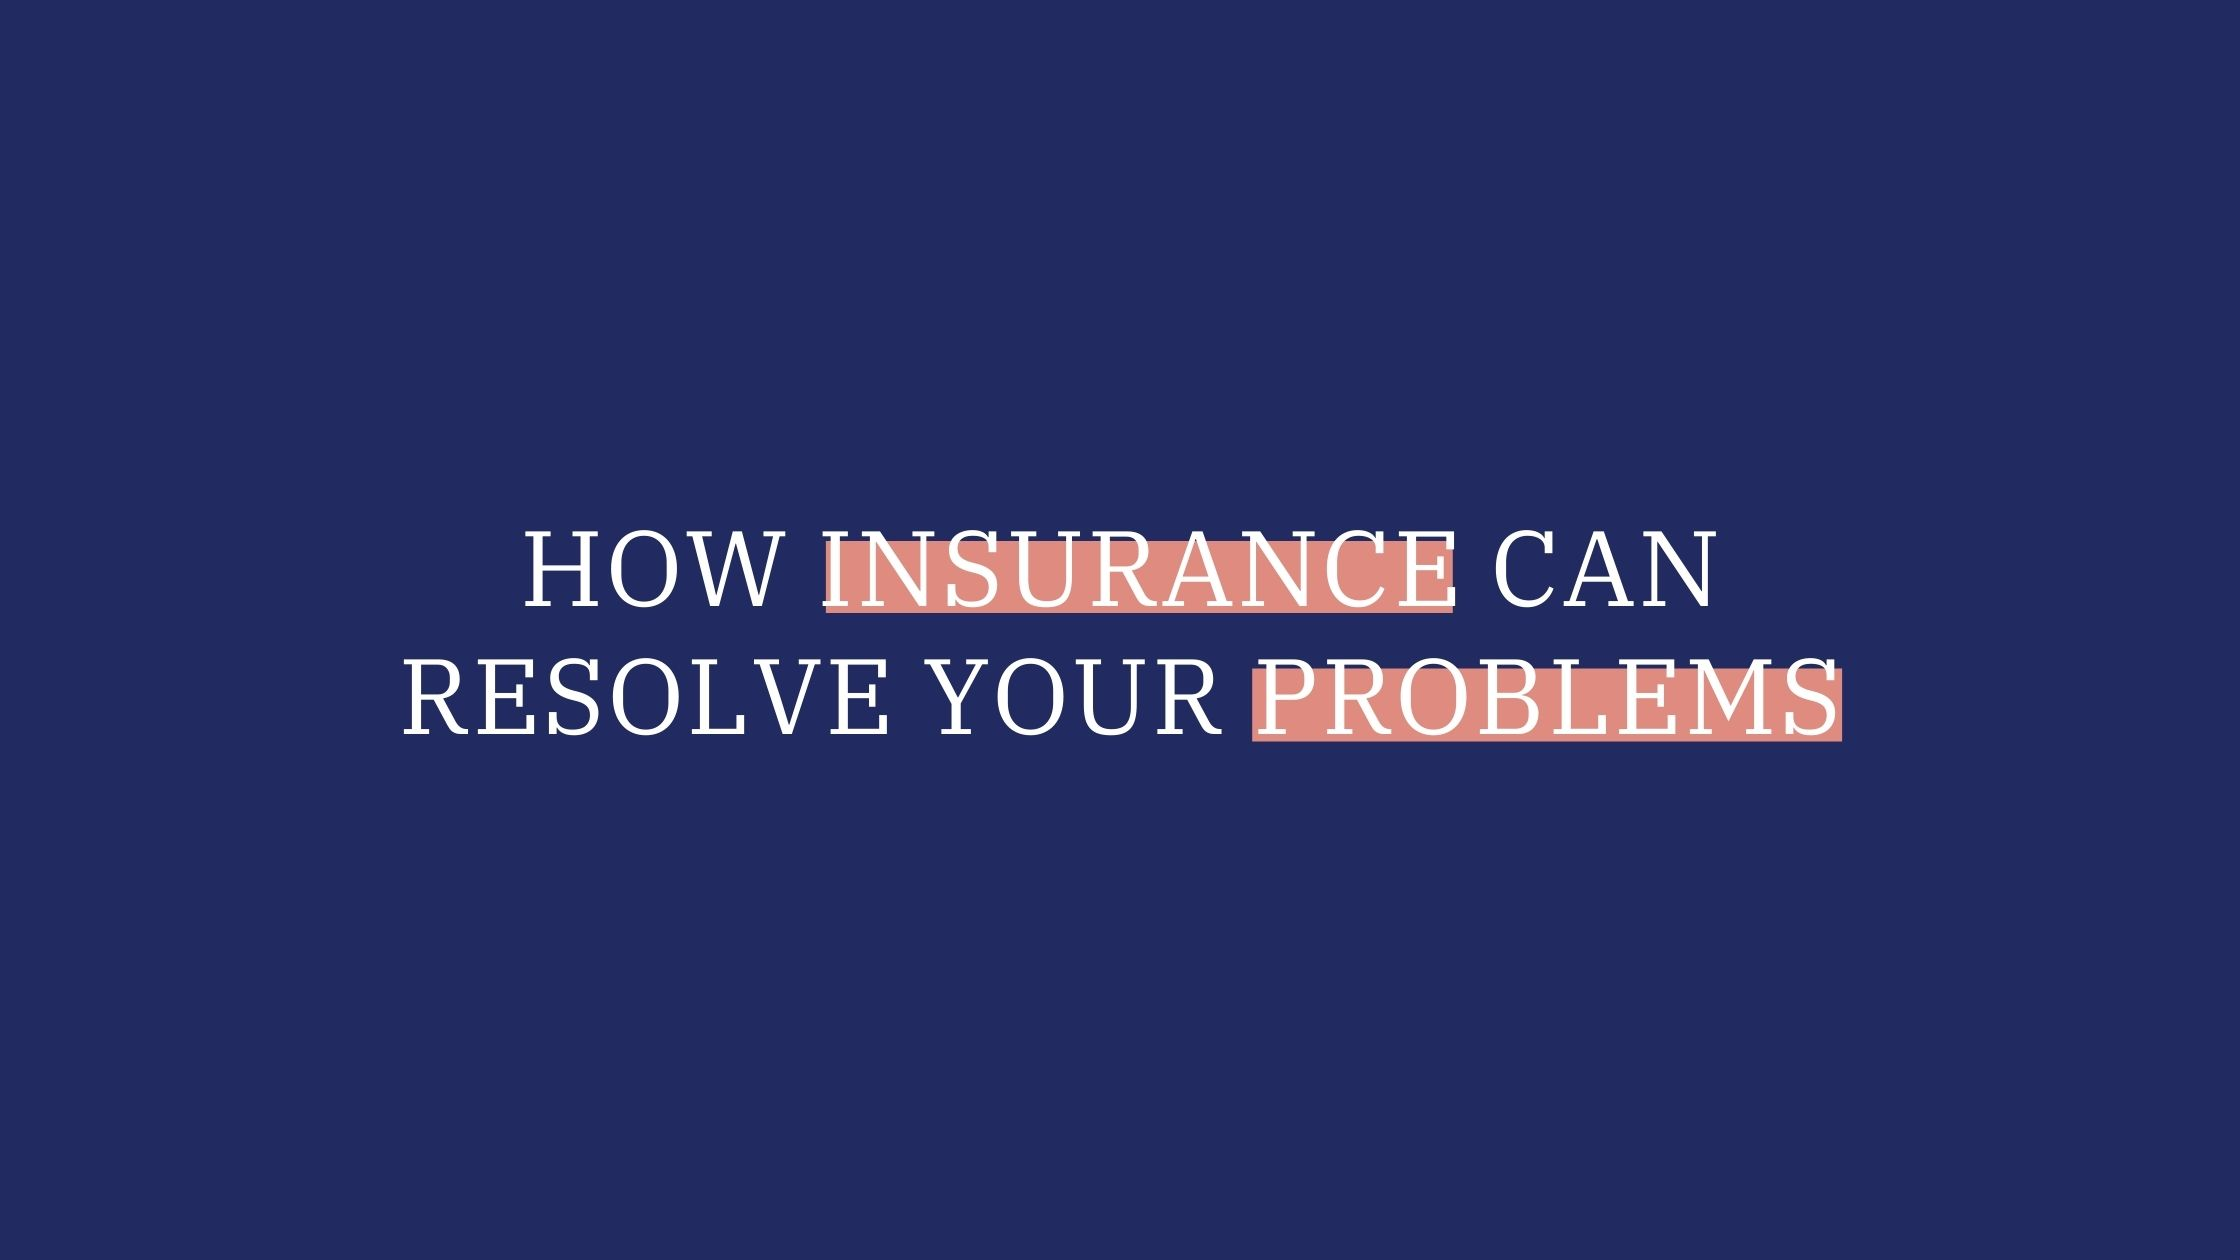 Freelancers problems can be resolved with insurance